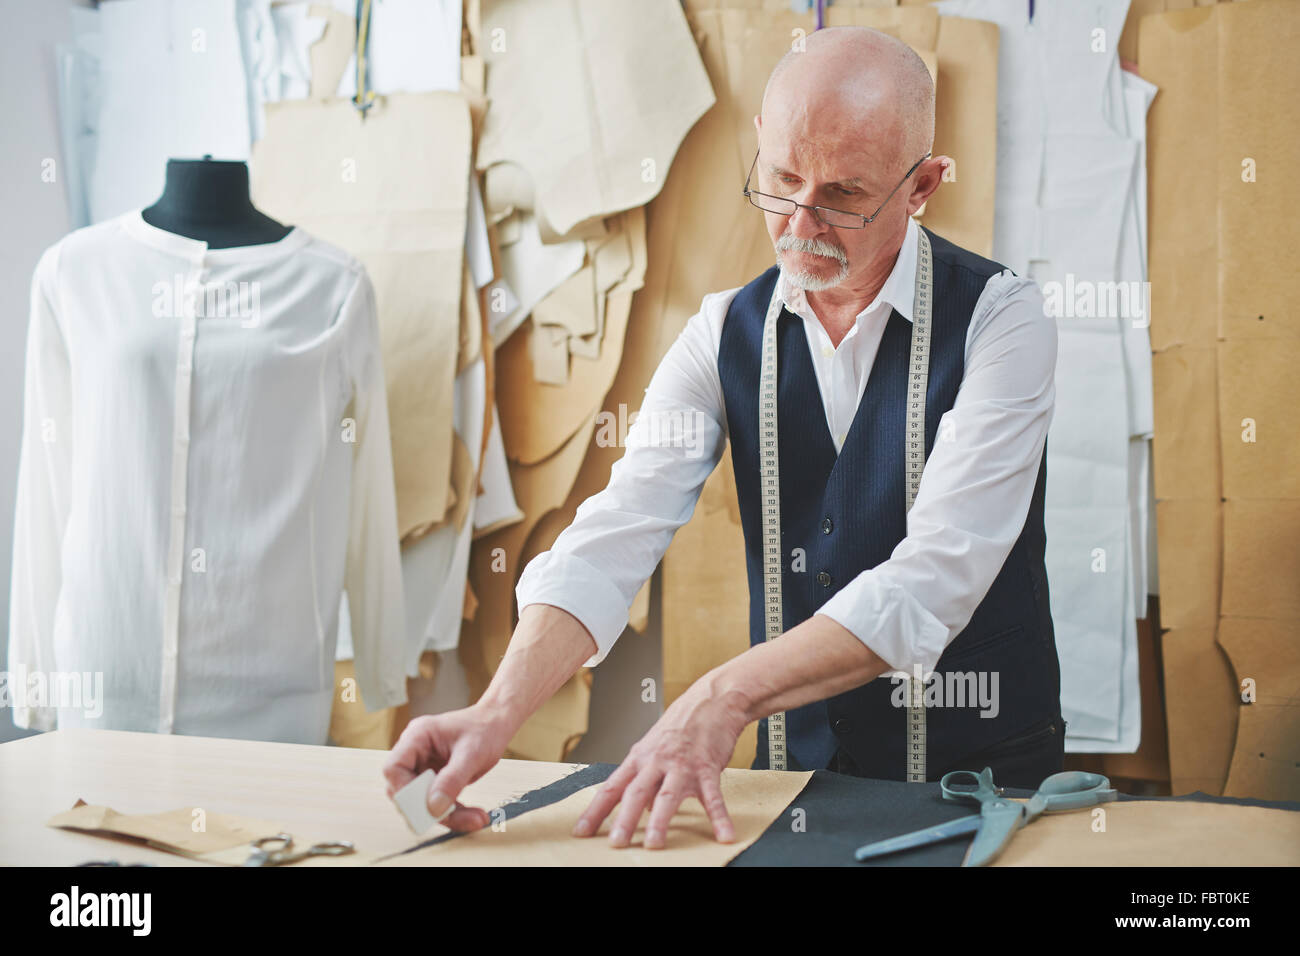 Mature tailor cutting out pattern in tailoring shop - Stock Image